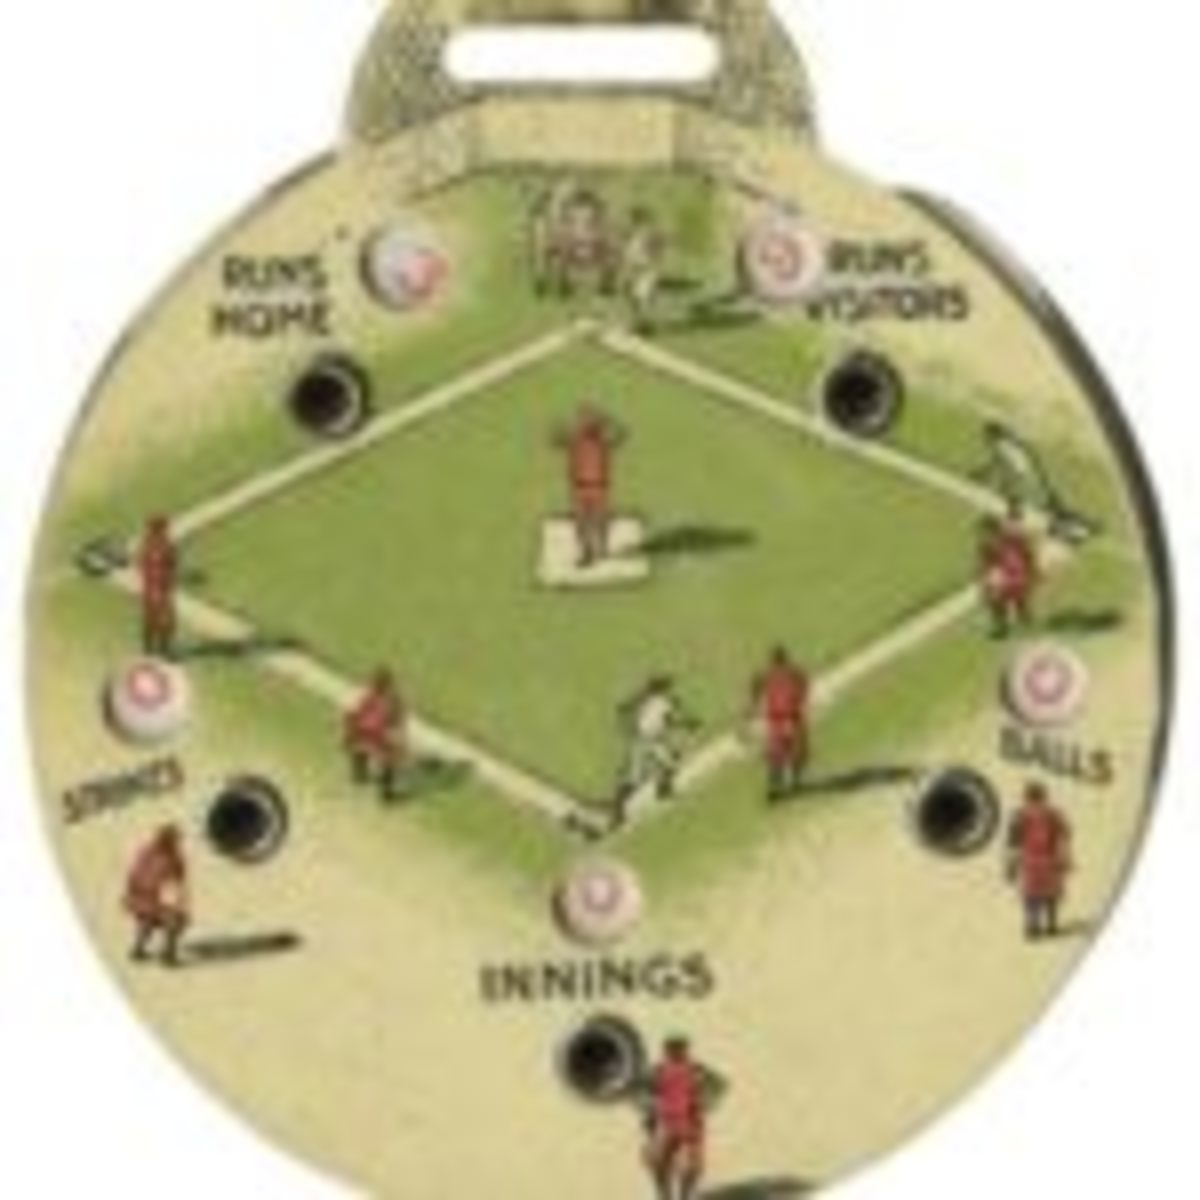 """1935 Quaker Oats Premium Babe Ruth Umpire's Scorekeeper. Premium distributed by the Quaker Oats cereal company in 1935 features the visage of the Great Bambino on one side while the other features movable wheels and viewing windows for umpire's scorekeeping. Measuring 1 3/4"""" in diameter, this piece is one with the Boston Braves insignia on Babe's cap. Sold at auction for $215.10. Courtesy of Heritage Auctions"""